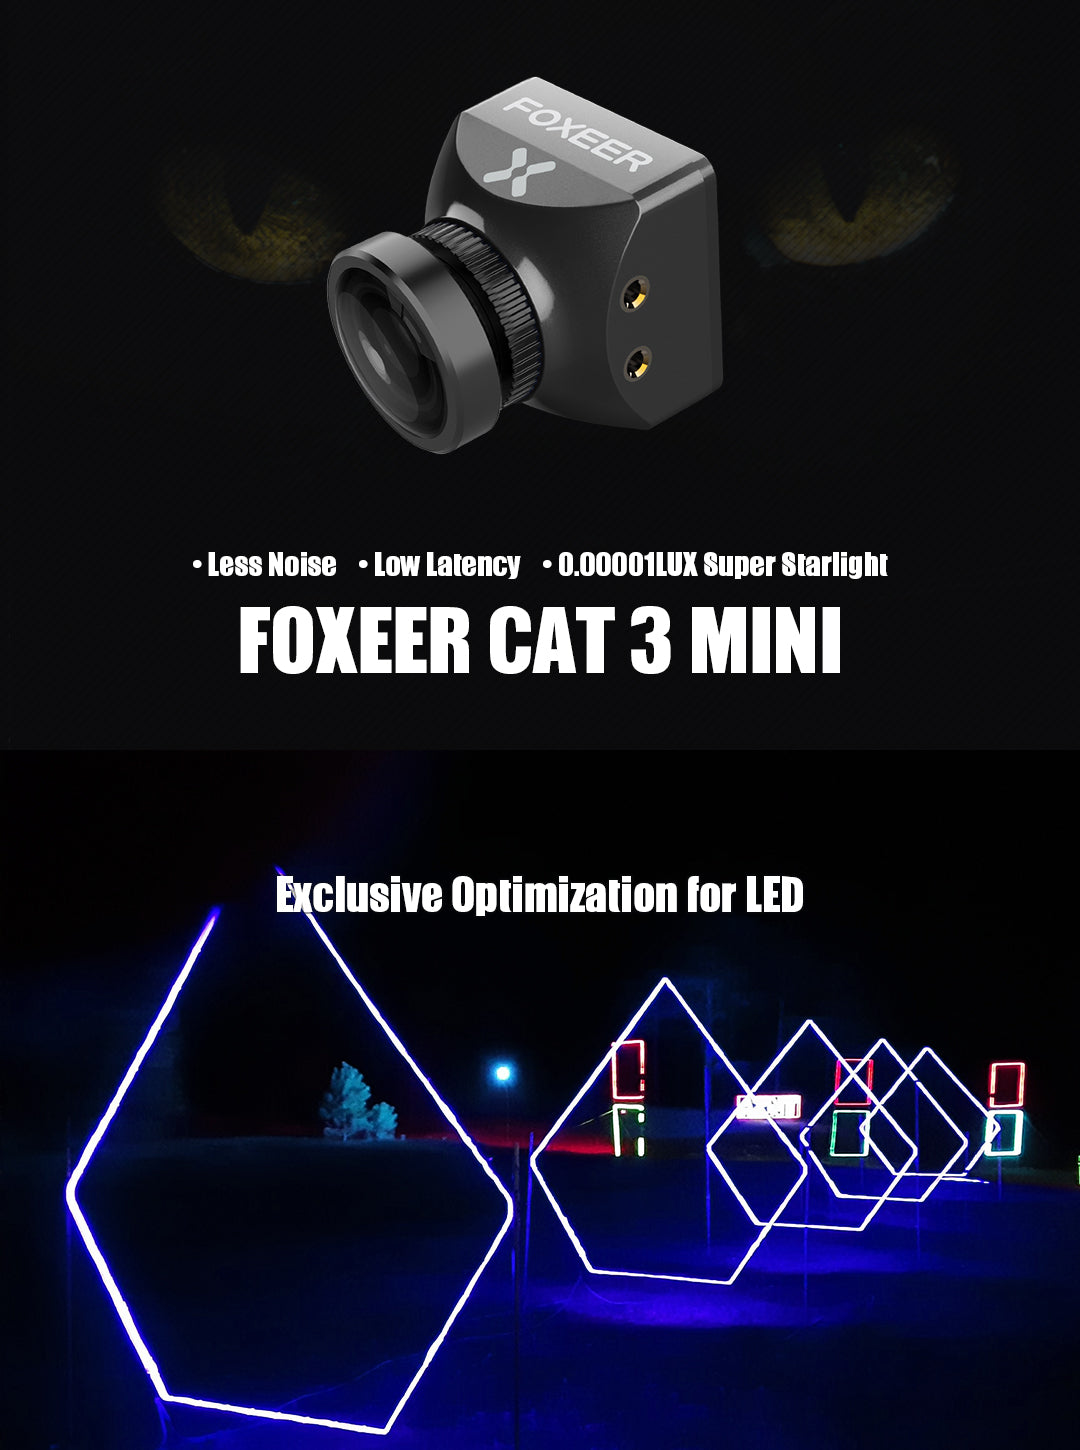 Foxeer Cat 3 Mini